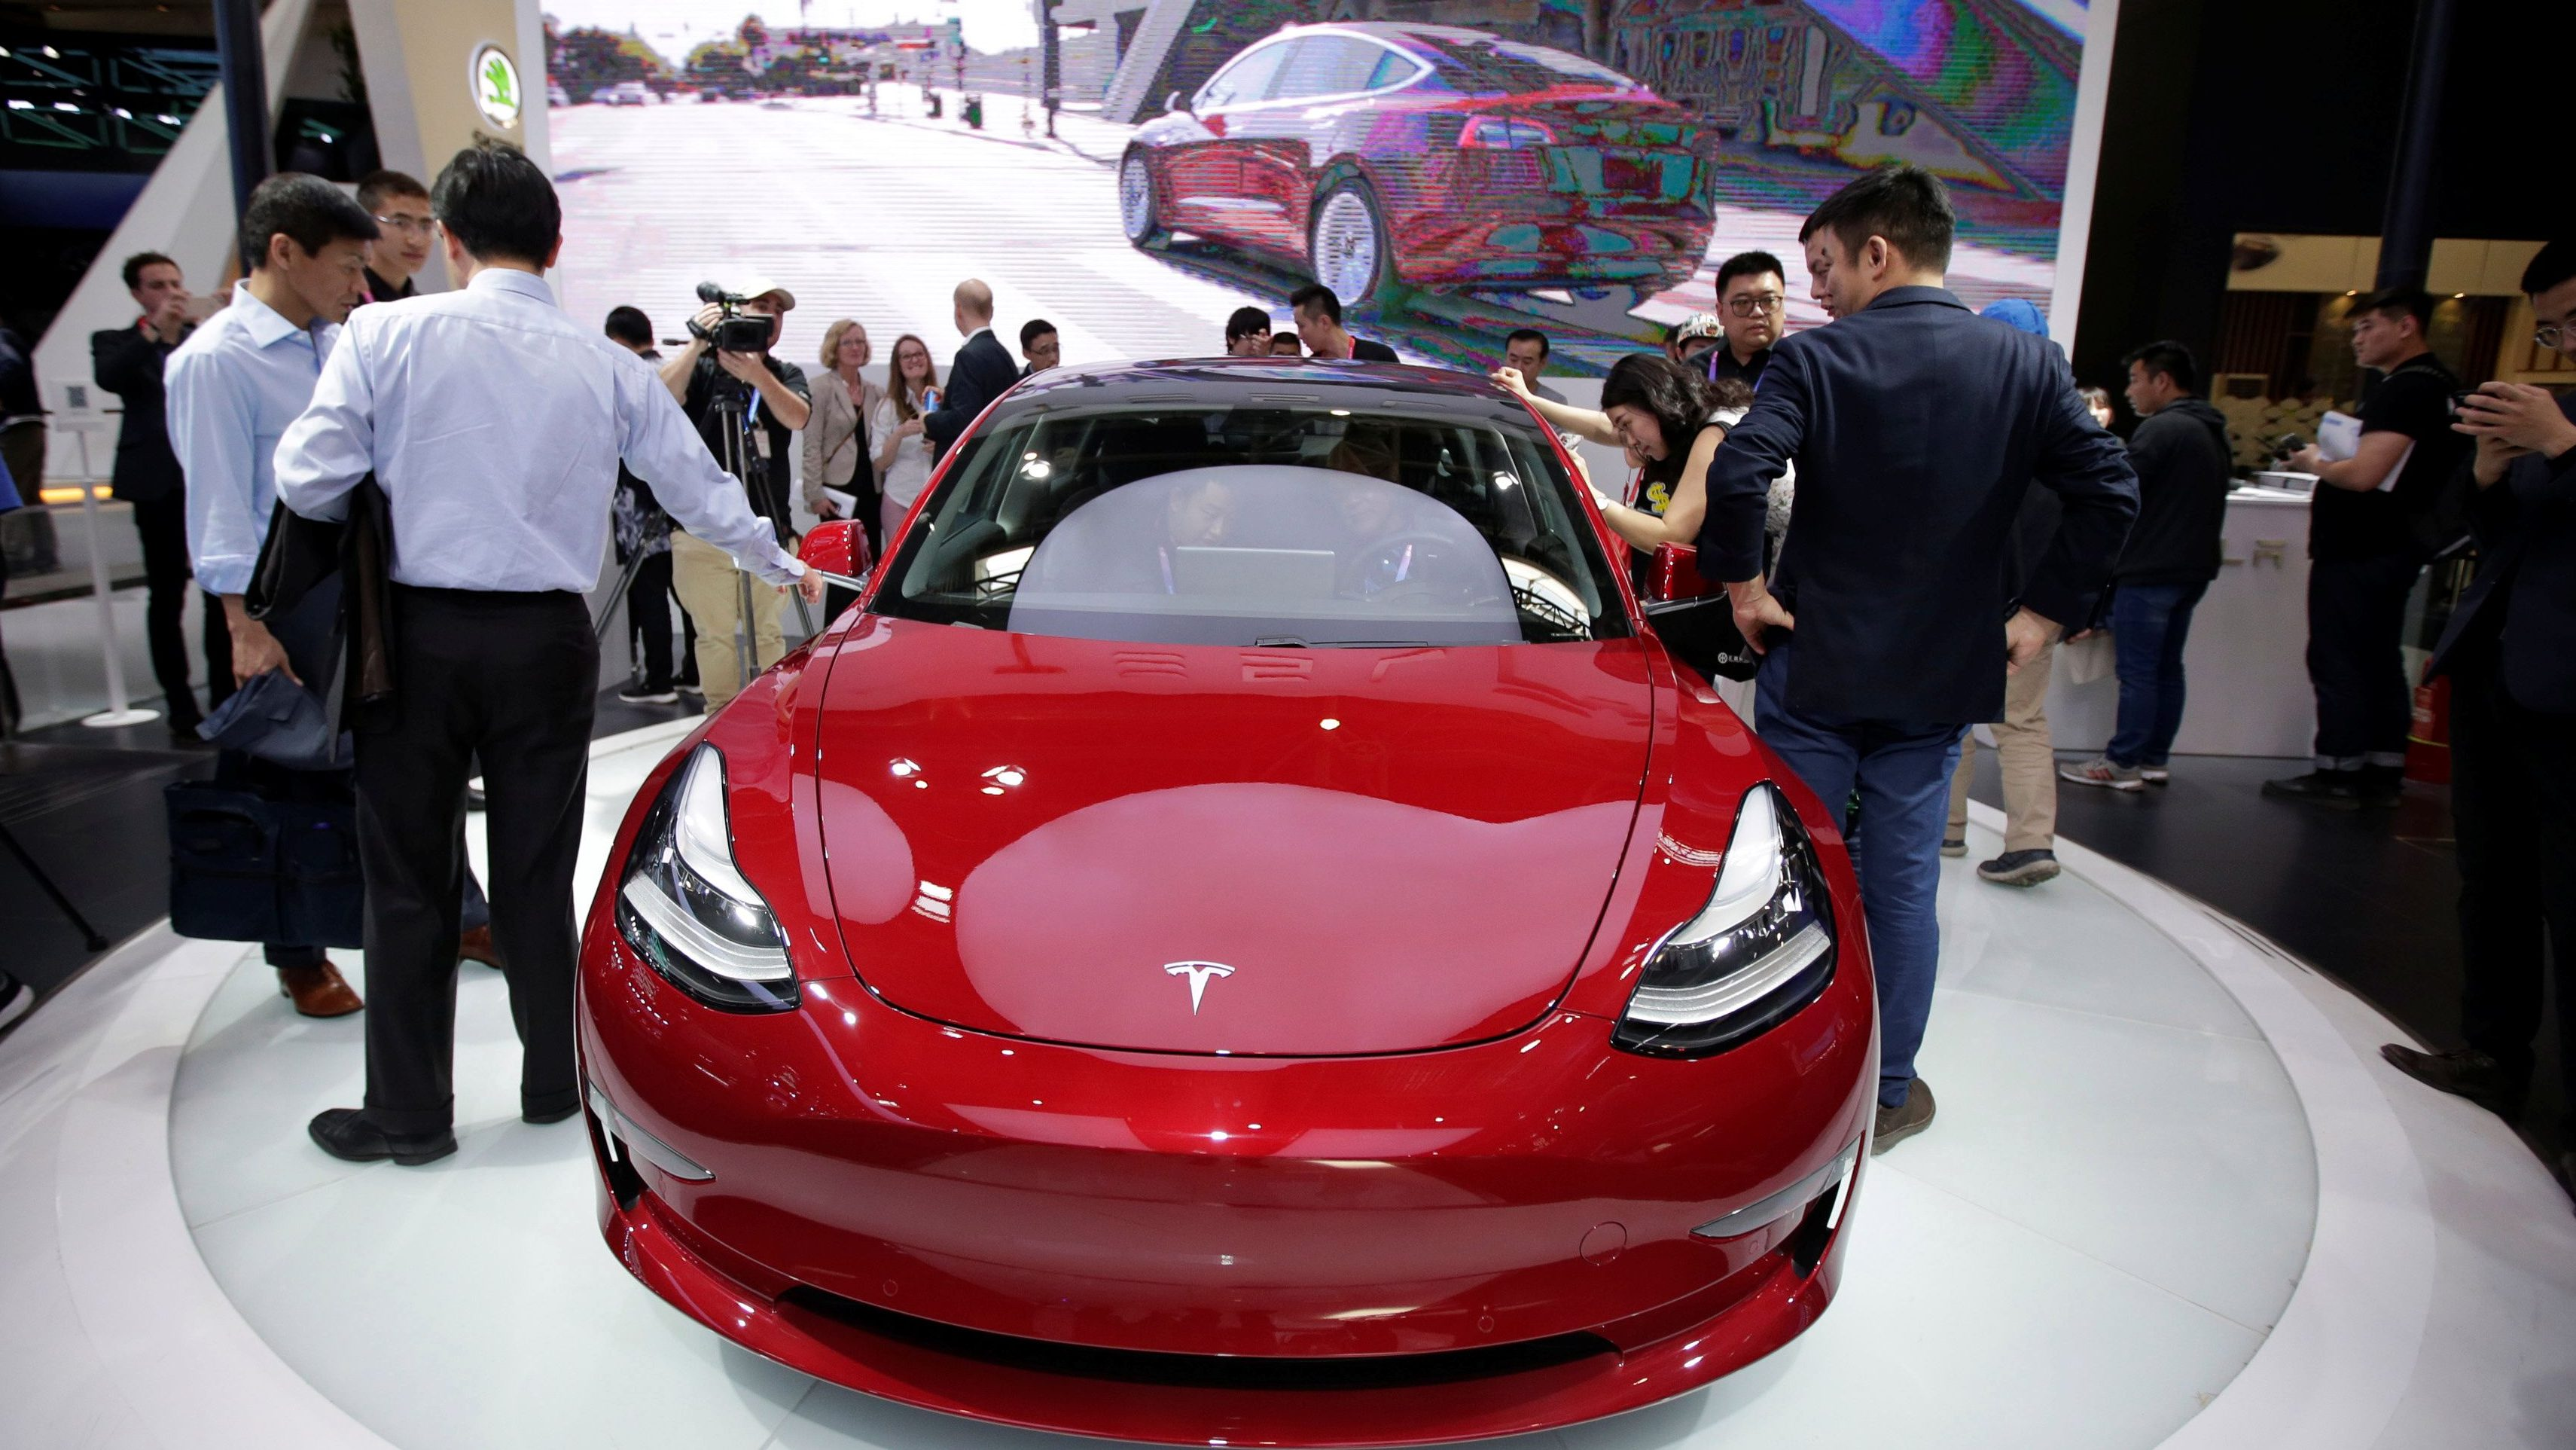 A Tesla Model 3 car is displayed during a media preview at the Auto China 2018 motor show in Beijing, China April 25, 2018.